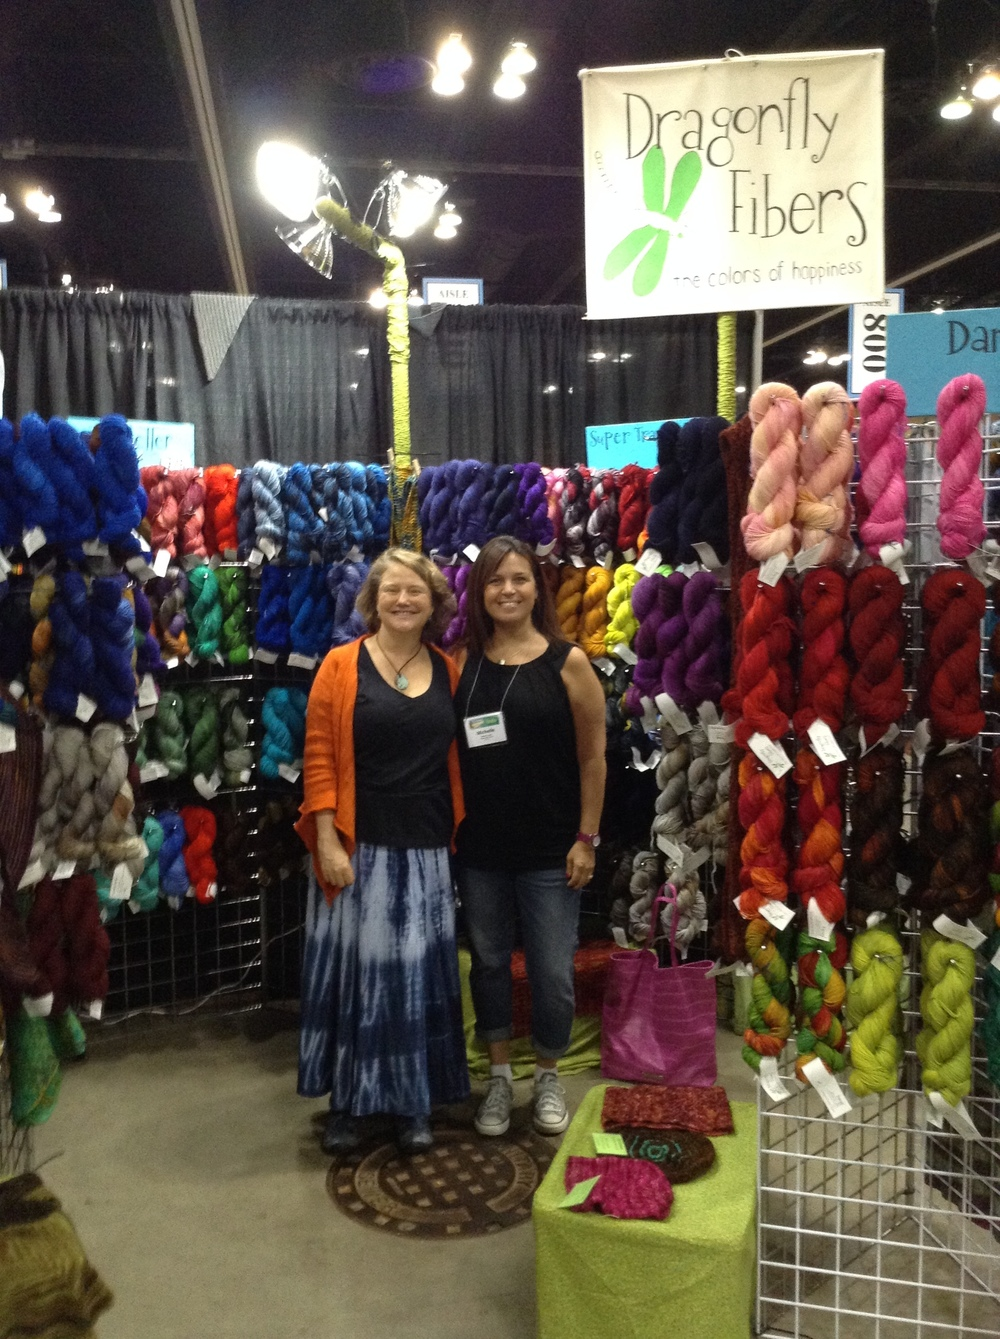 Me & Kate in the Dragonfly Fibers booth